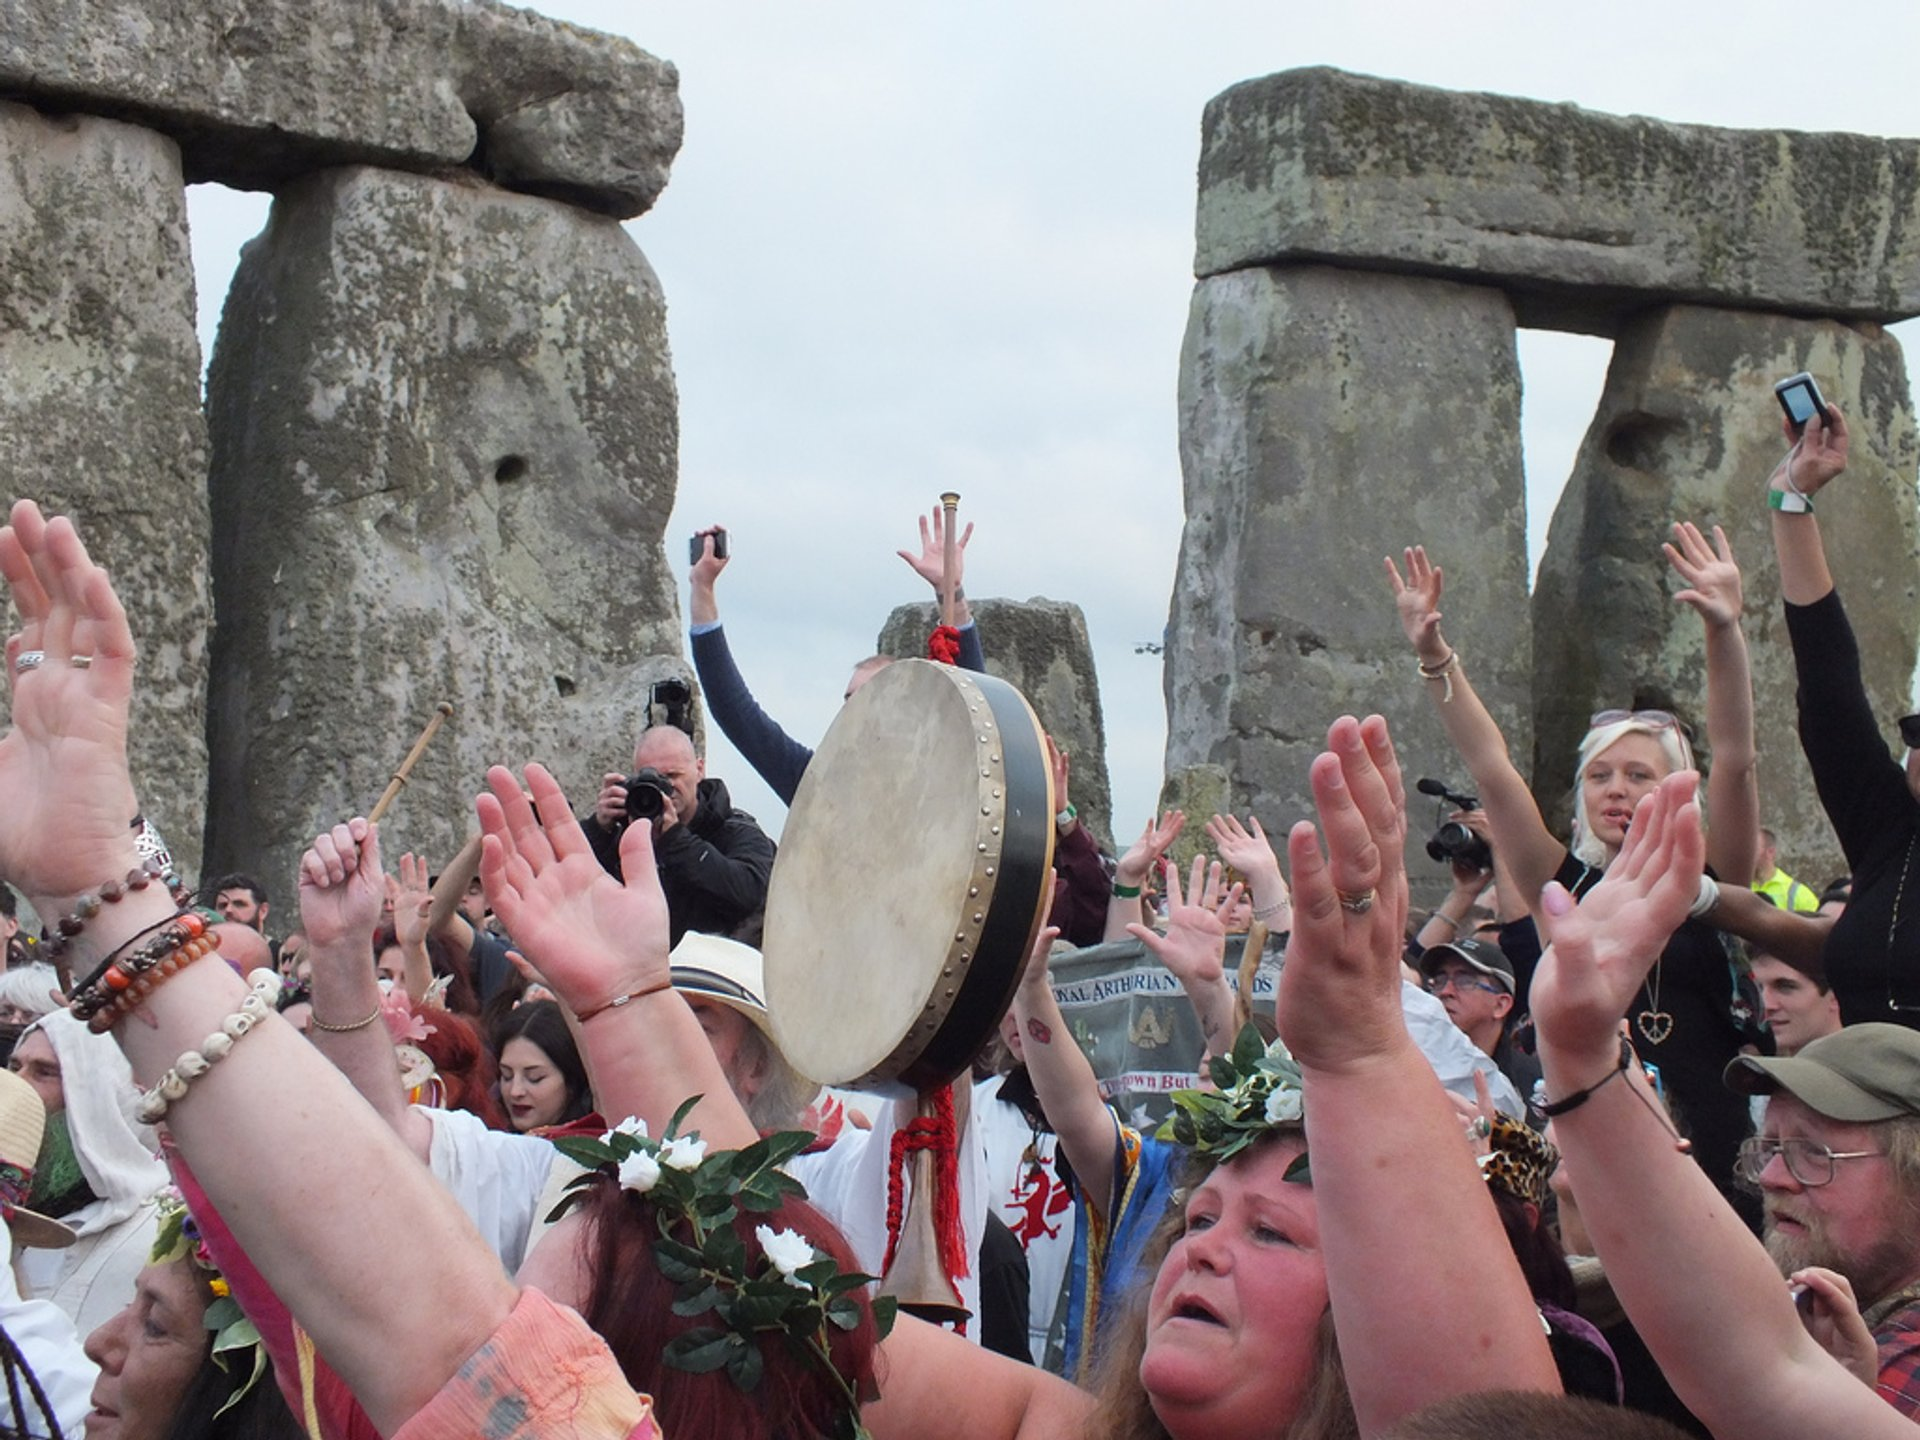 Stonehenge: Solstice and Equinox in England - Best Season 2020